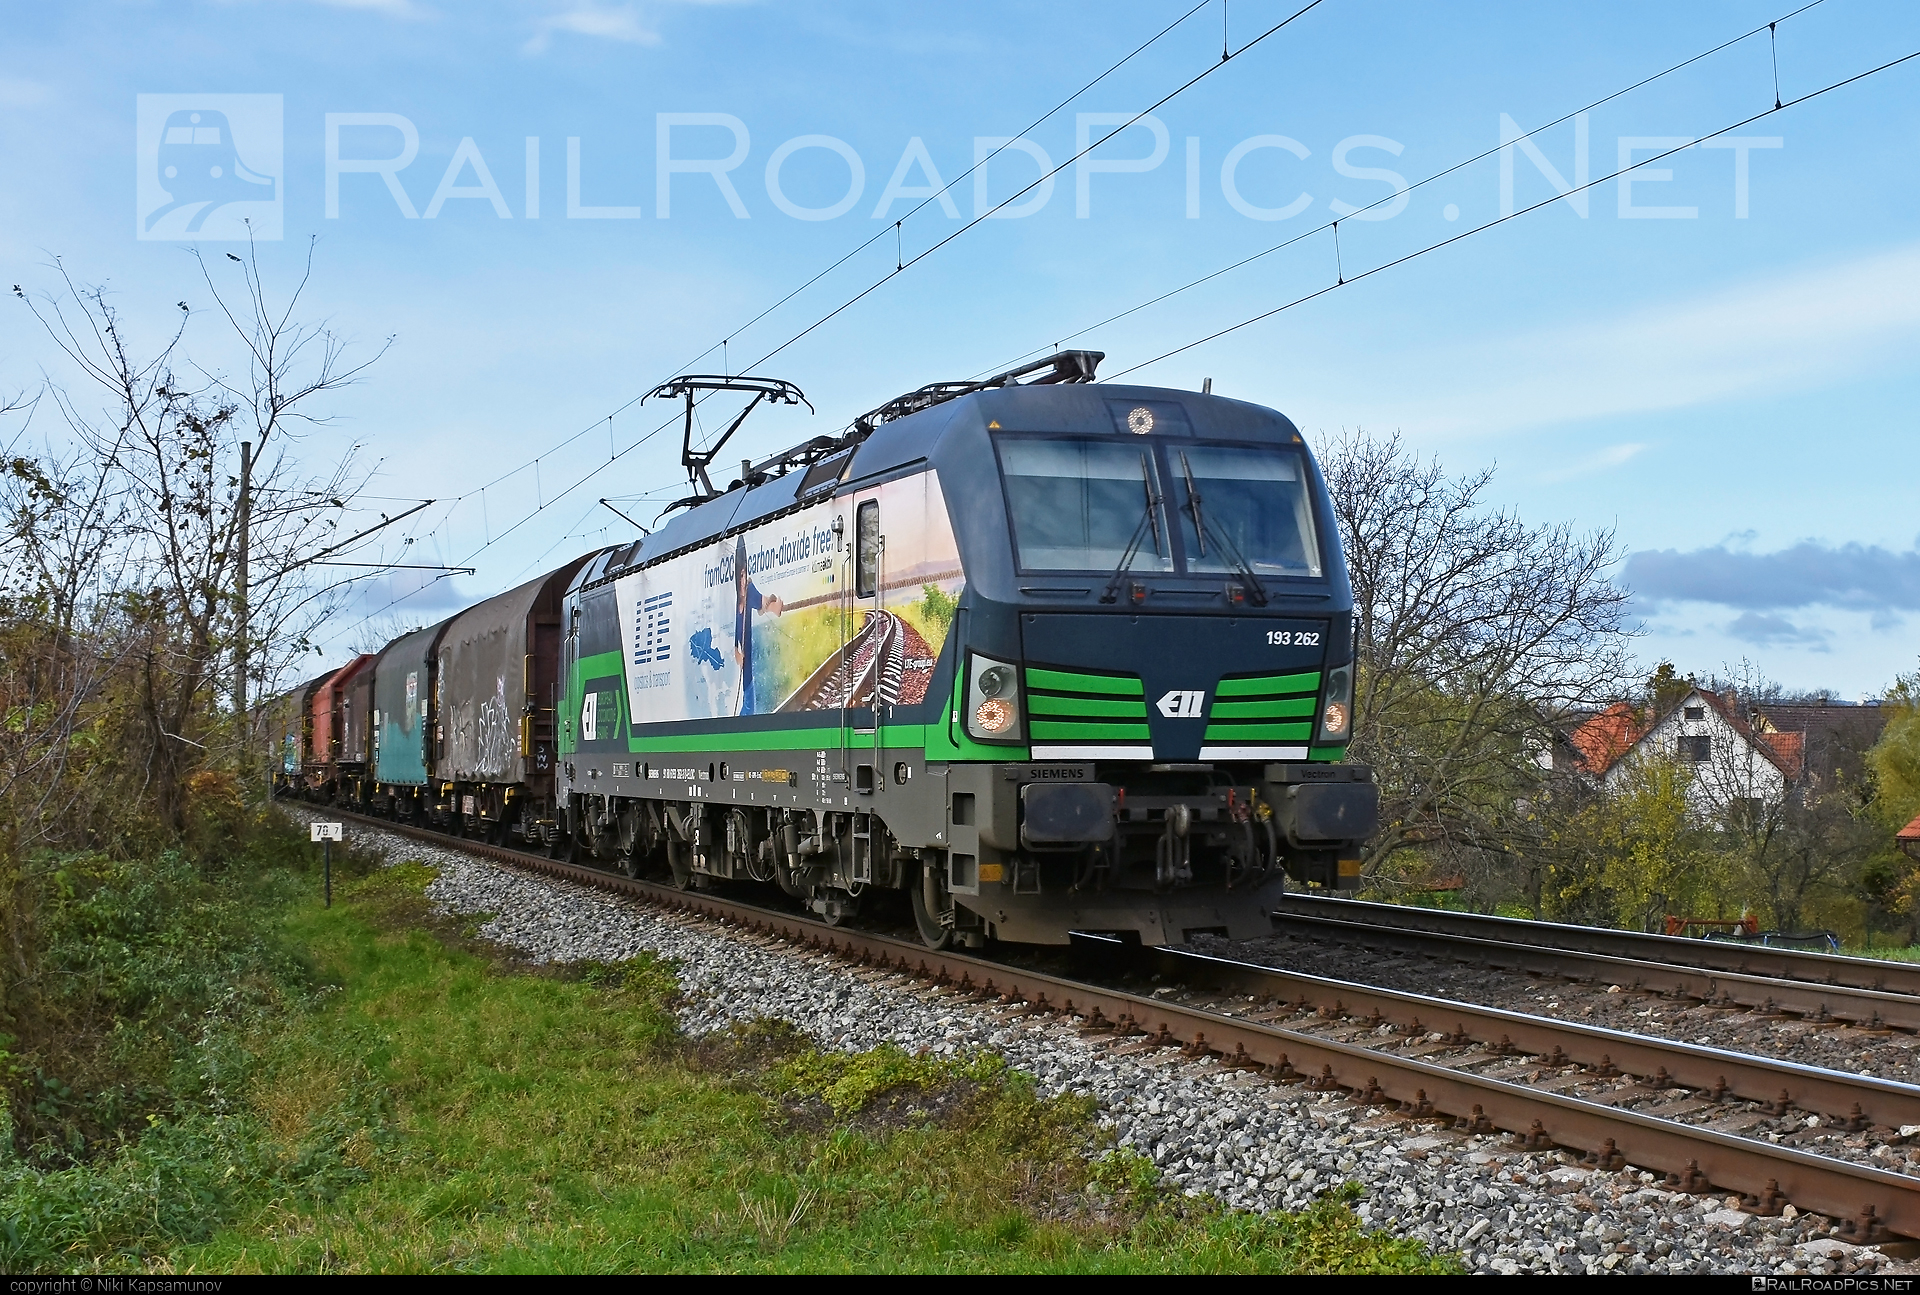 Siemens Vectron MS - 193 262 operated by LTE Logistik und Transport GmbH #ell #ellgermany #eloc #europeanlocomotiveleasing #lte #ltelogistikundtransport #ltelogistikundtransportgmbh #siemens #siemensvectron #siemensvectronms #vectron #vectronms